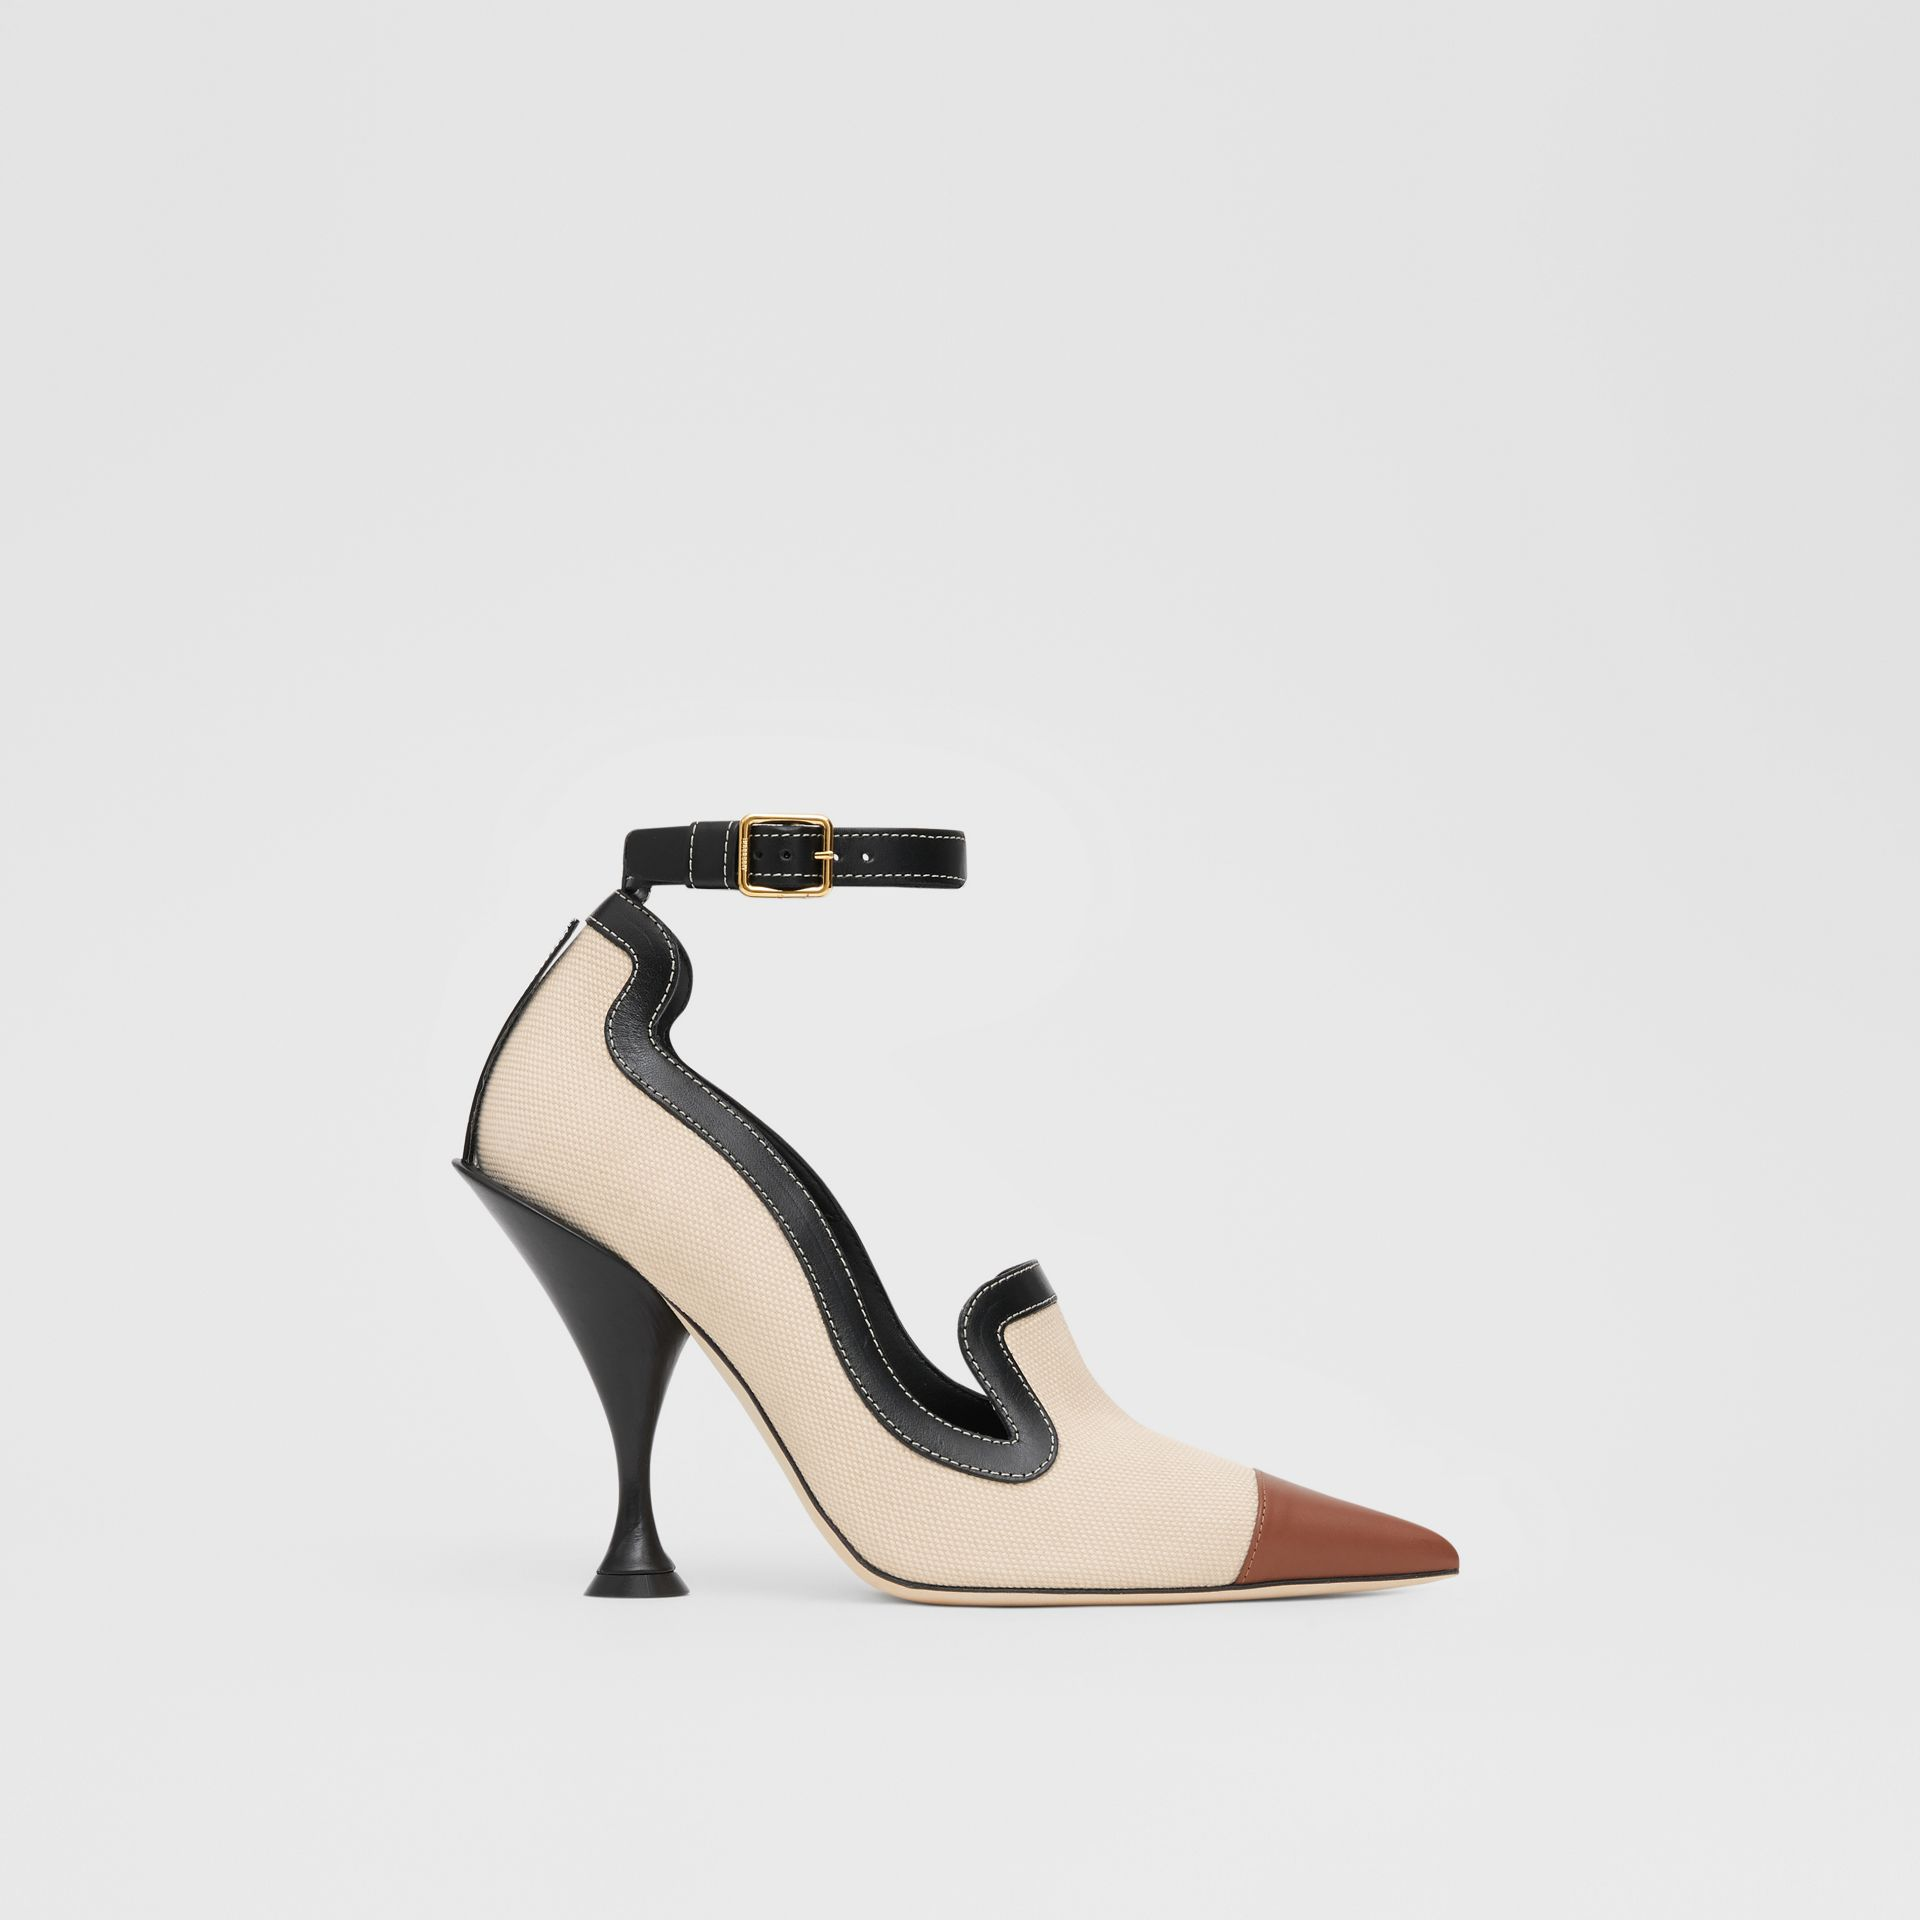 Cotton Canvas and Leather Point-toe Pumps in Natural/black - Women | Burberry Singapore - gallery image 5